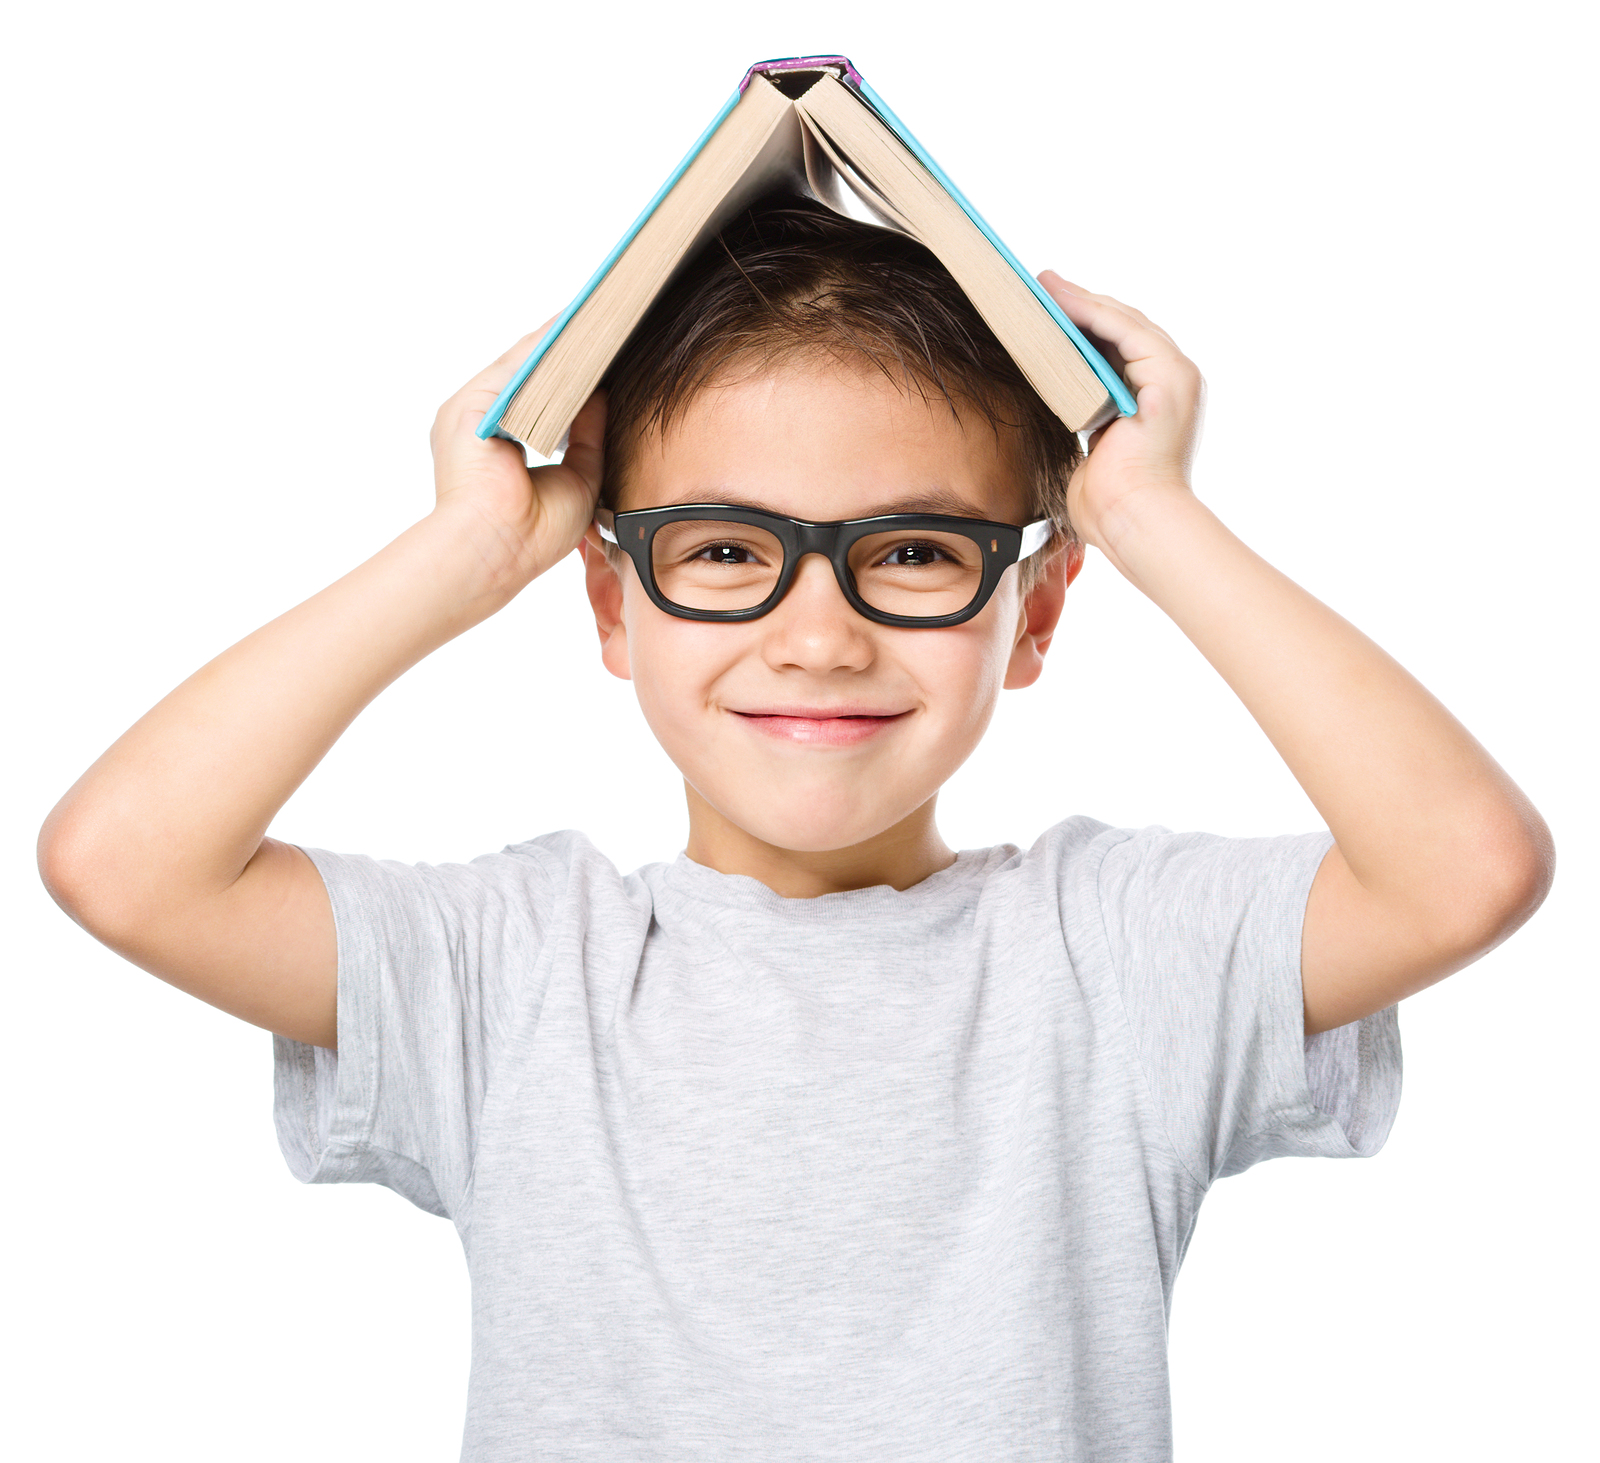 Cute little child plays with book while wearing glasses, isolate